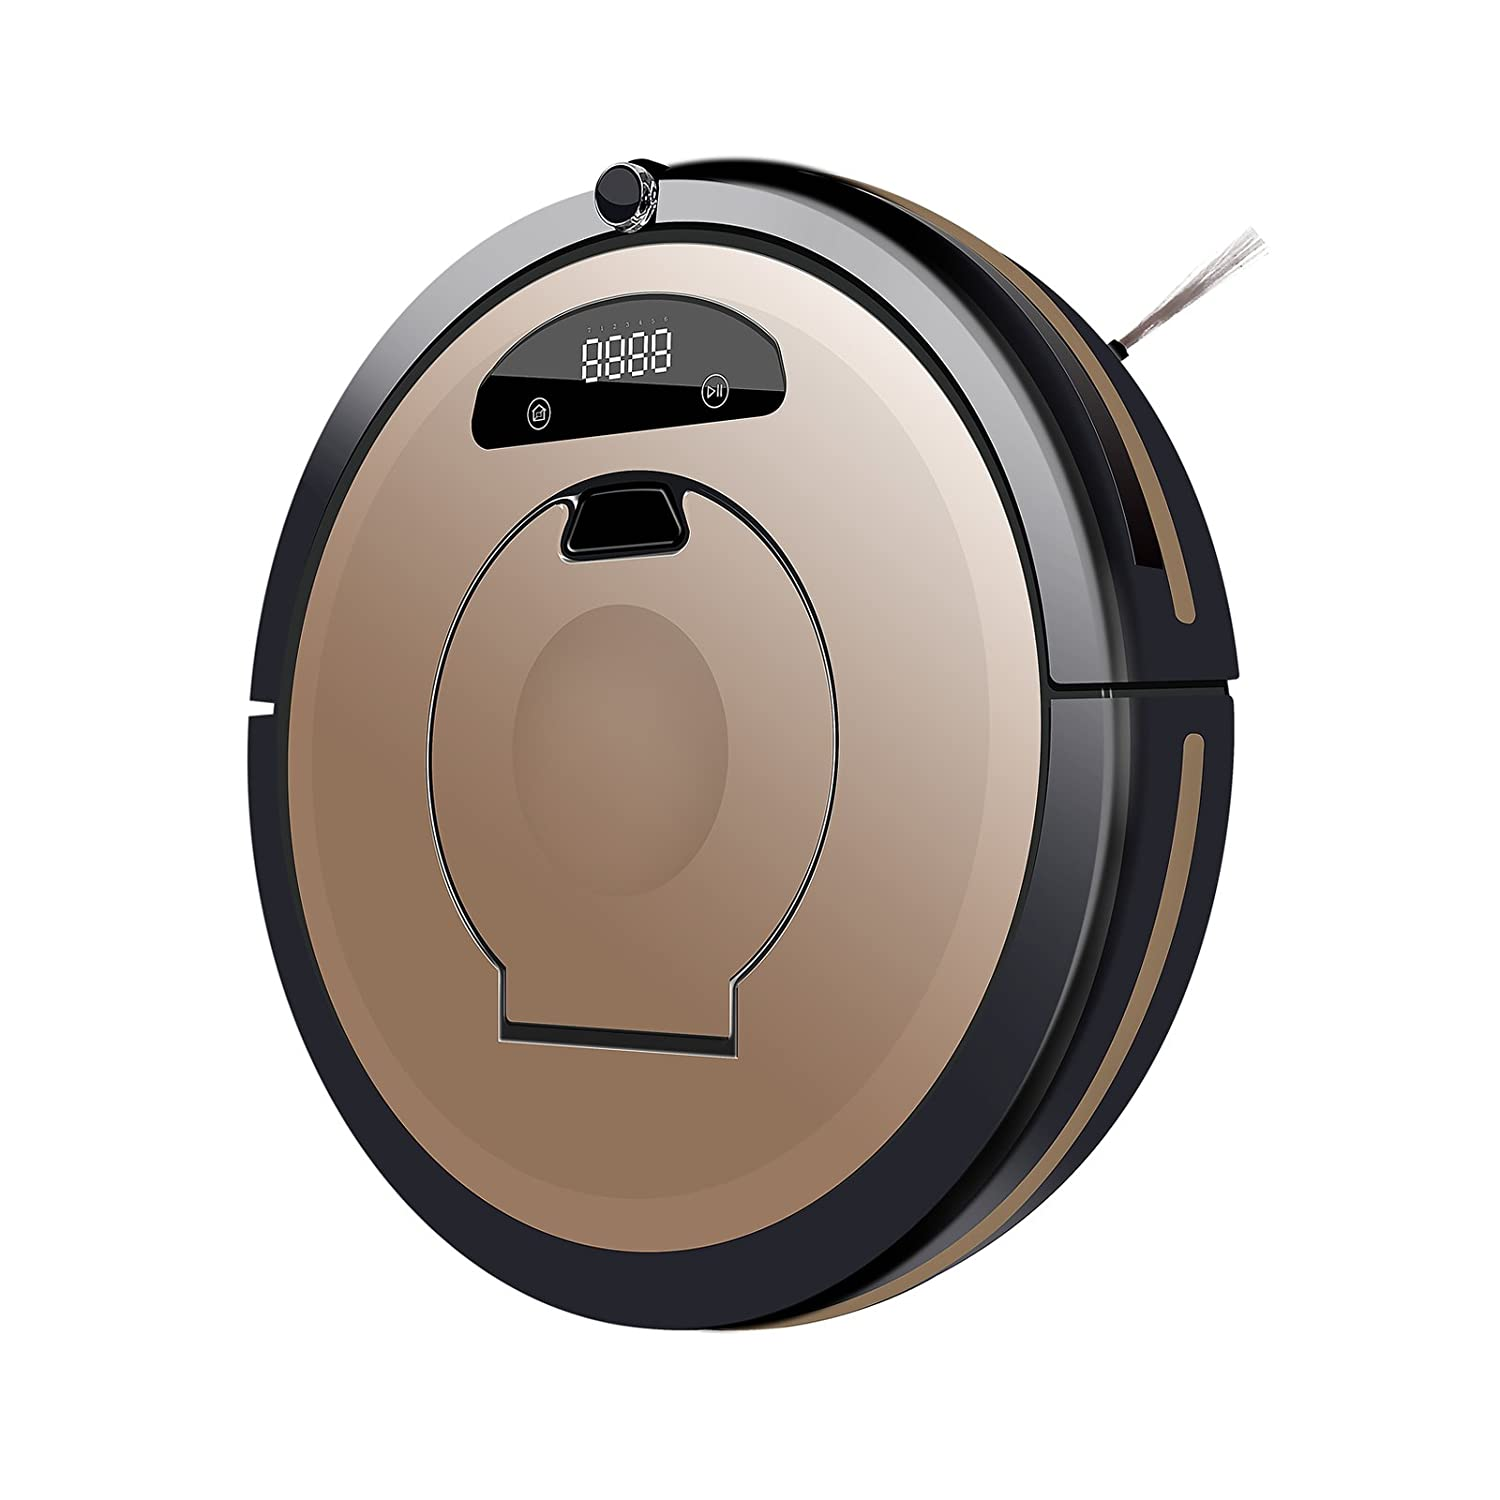 Sedwin Robotic Vacuum Cleaner for Pets and Allergies Home Hand Vac Golden Remote Control Self Charging Cleaning Devices.